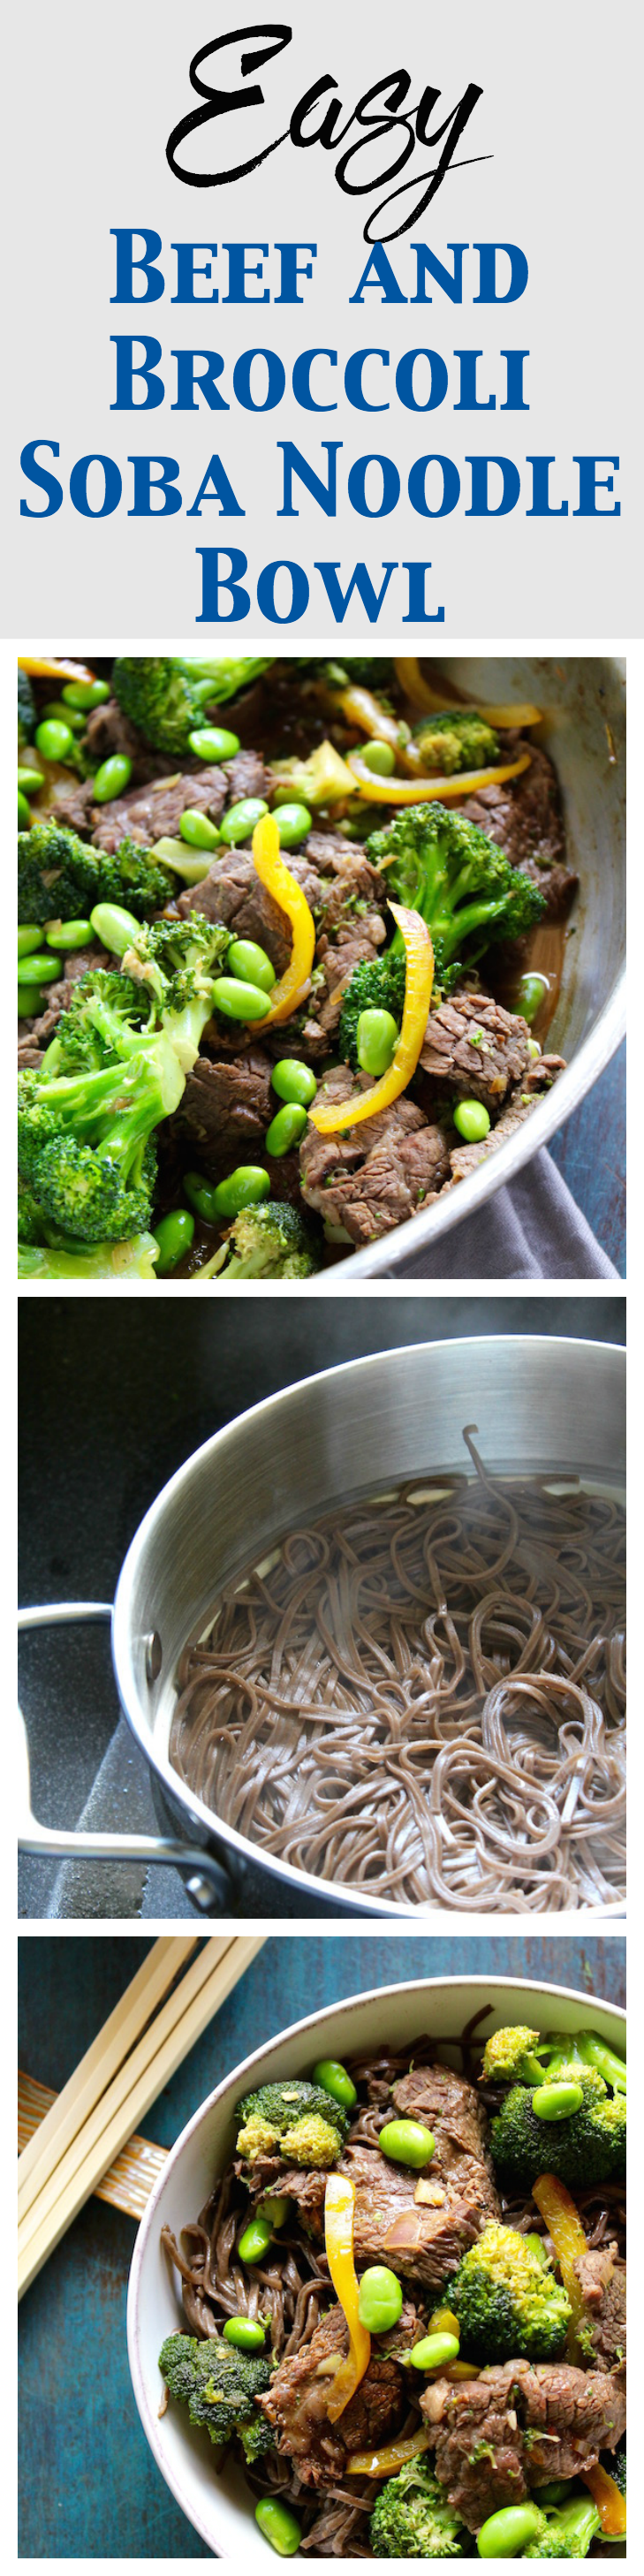 easy beef and broccoli soba noodle bowl pinterest